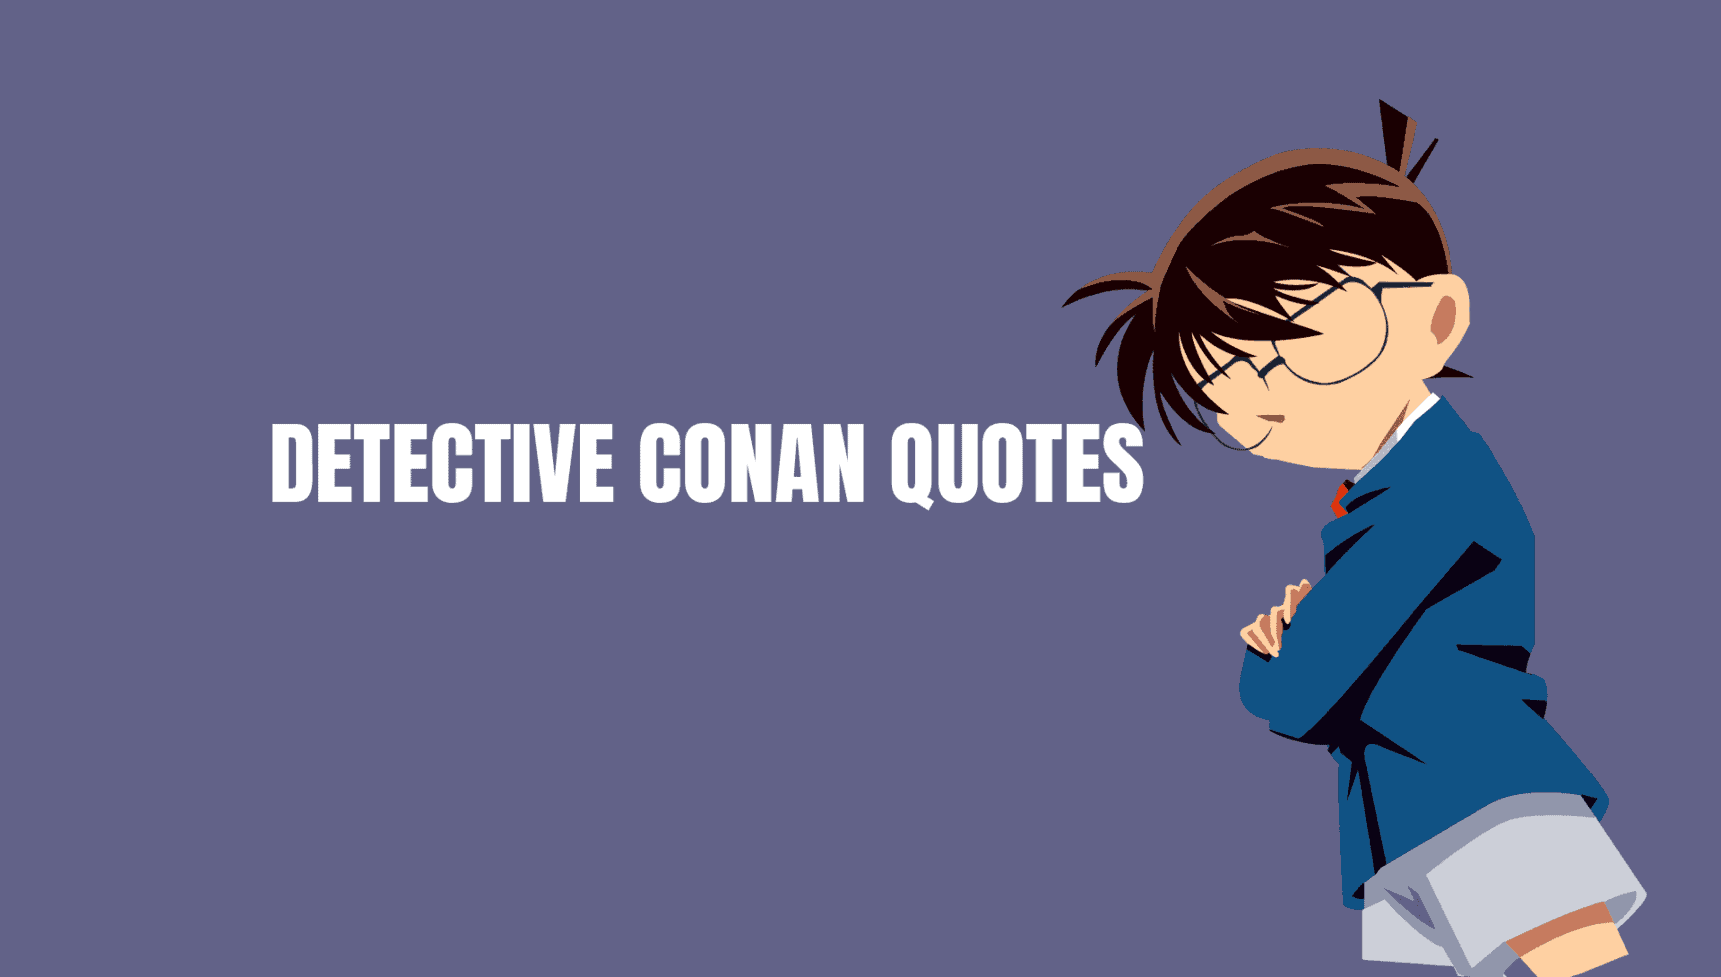 21 Mysterious Thoughtful Detective Conan Quotes